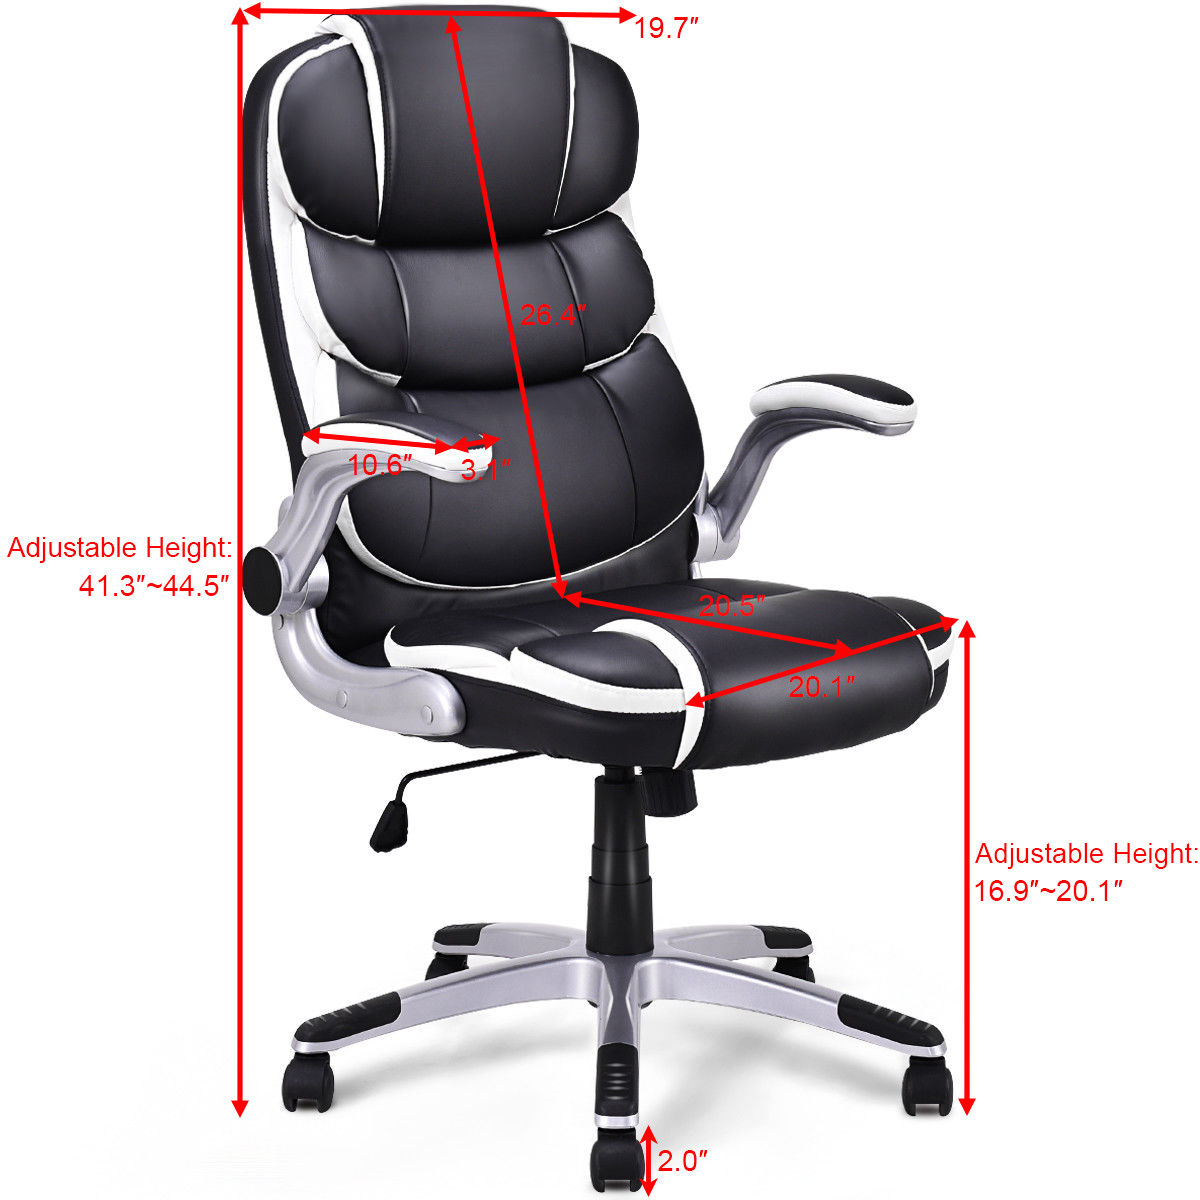 Pleasing Us 94 99 Giantex Pu Leather High Back Executive Office Chair Modern Swivel Desk Task Computer Gaming Chairs Ergonomic Furniture Hw56602 On Inzonedesignstudio Interior Chair Design Inzonedesignstudiocom